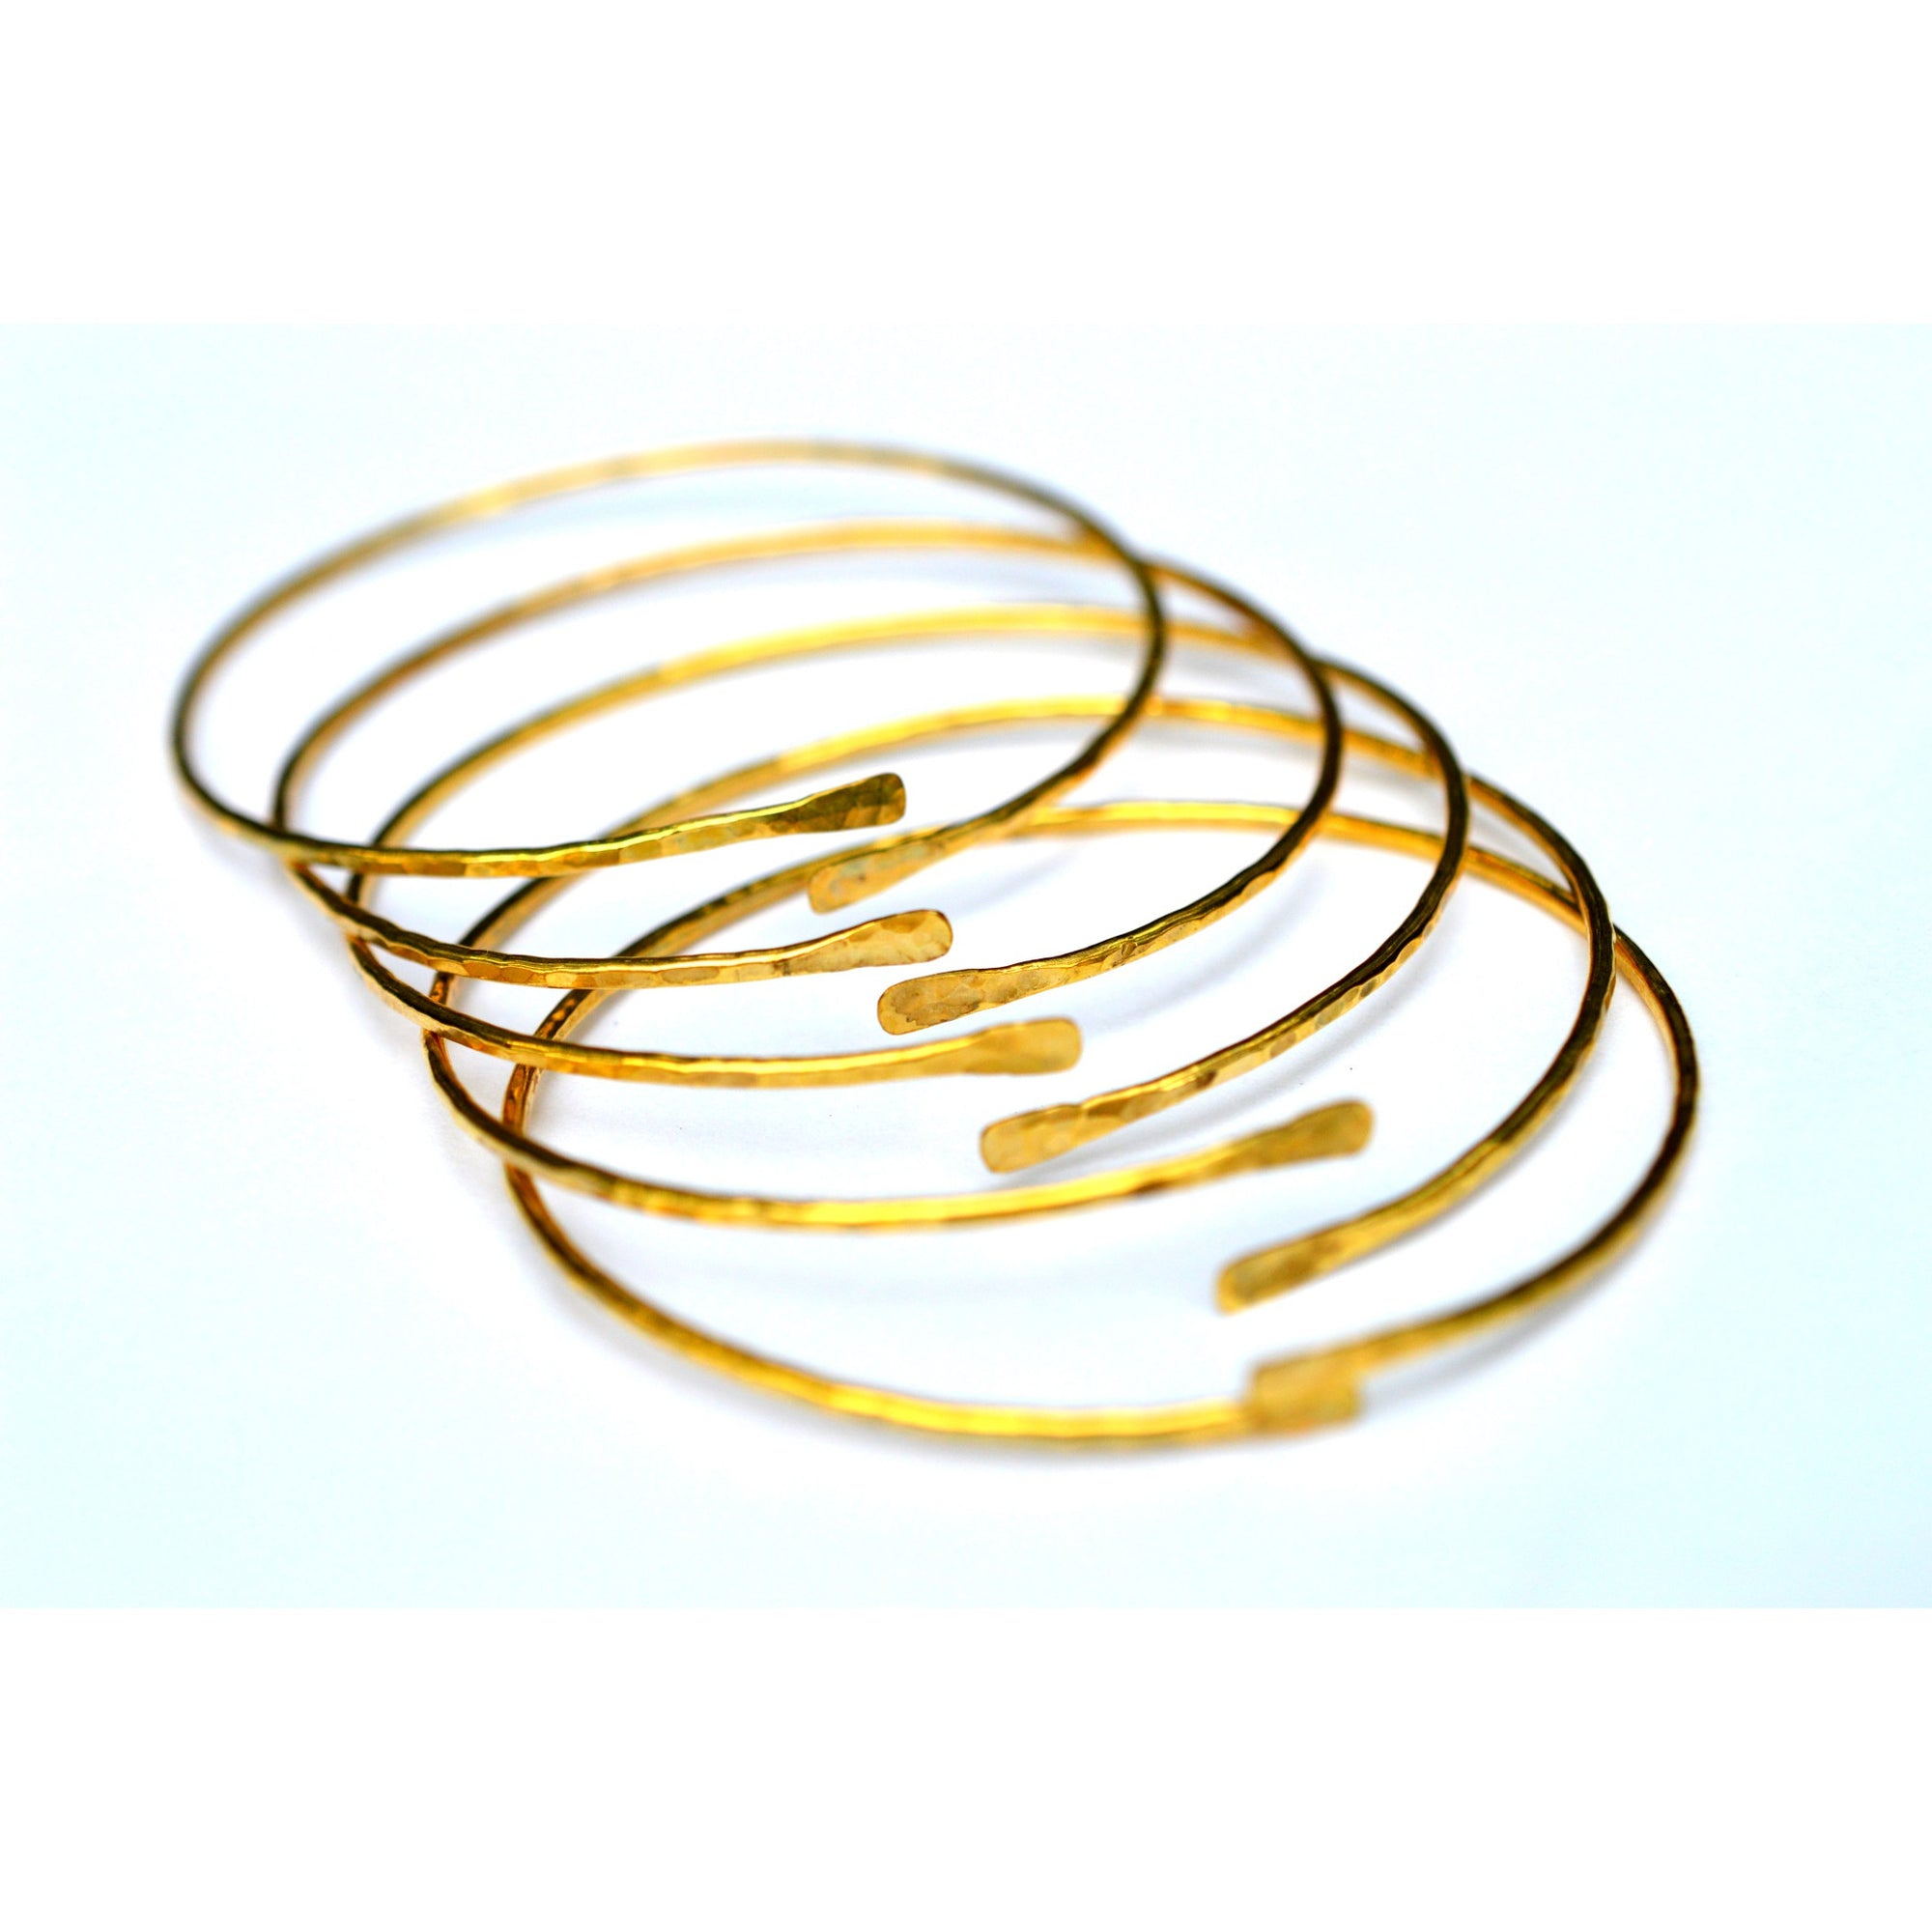 bangle at jewellery quincy latest lowest bangles designs price with thin gold buy diamond